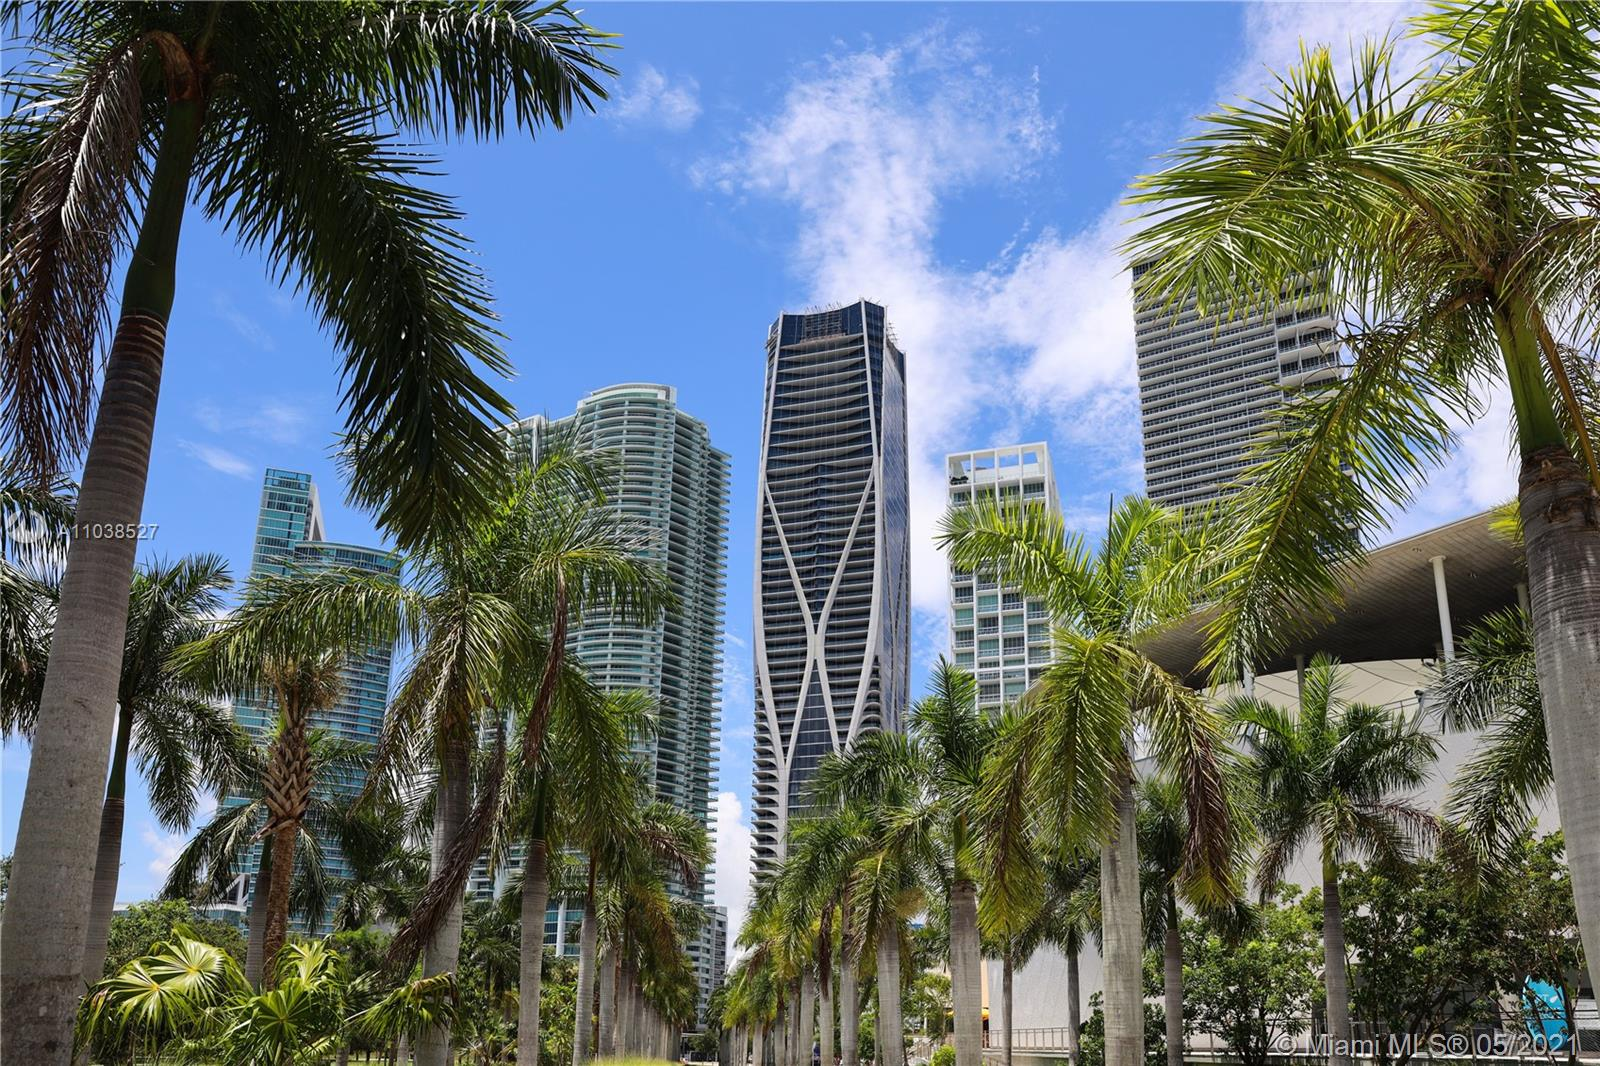 Main Property Image For 1000 Biscayne Blvd #PH-5101